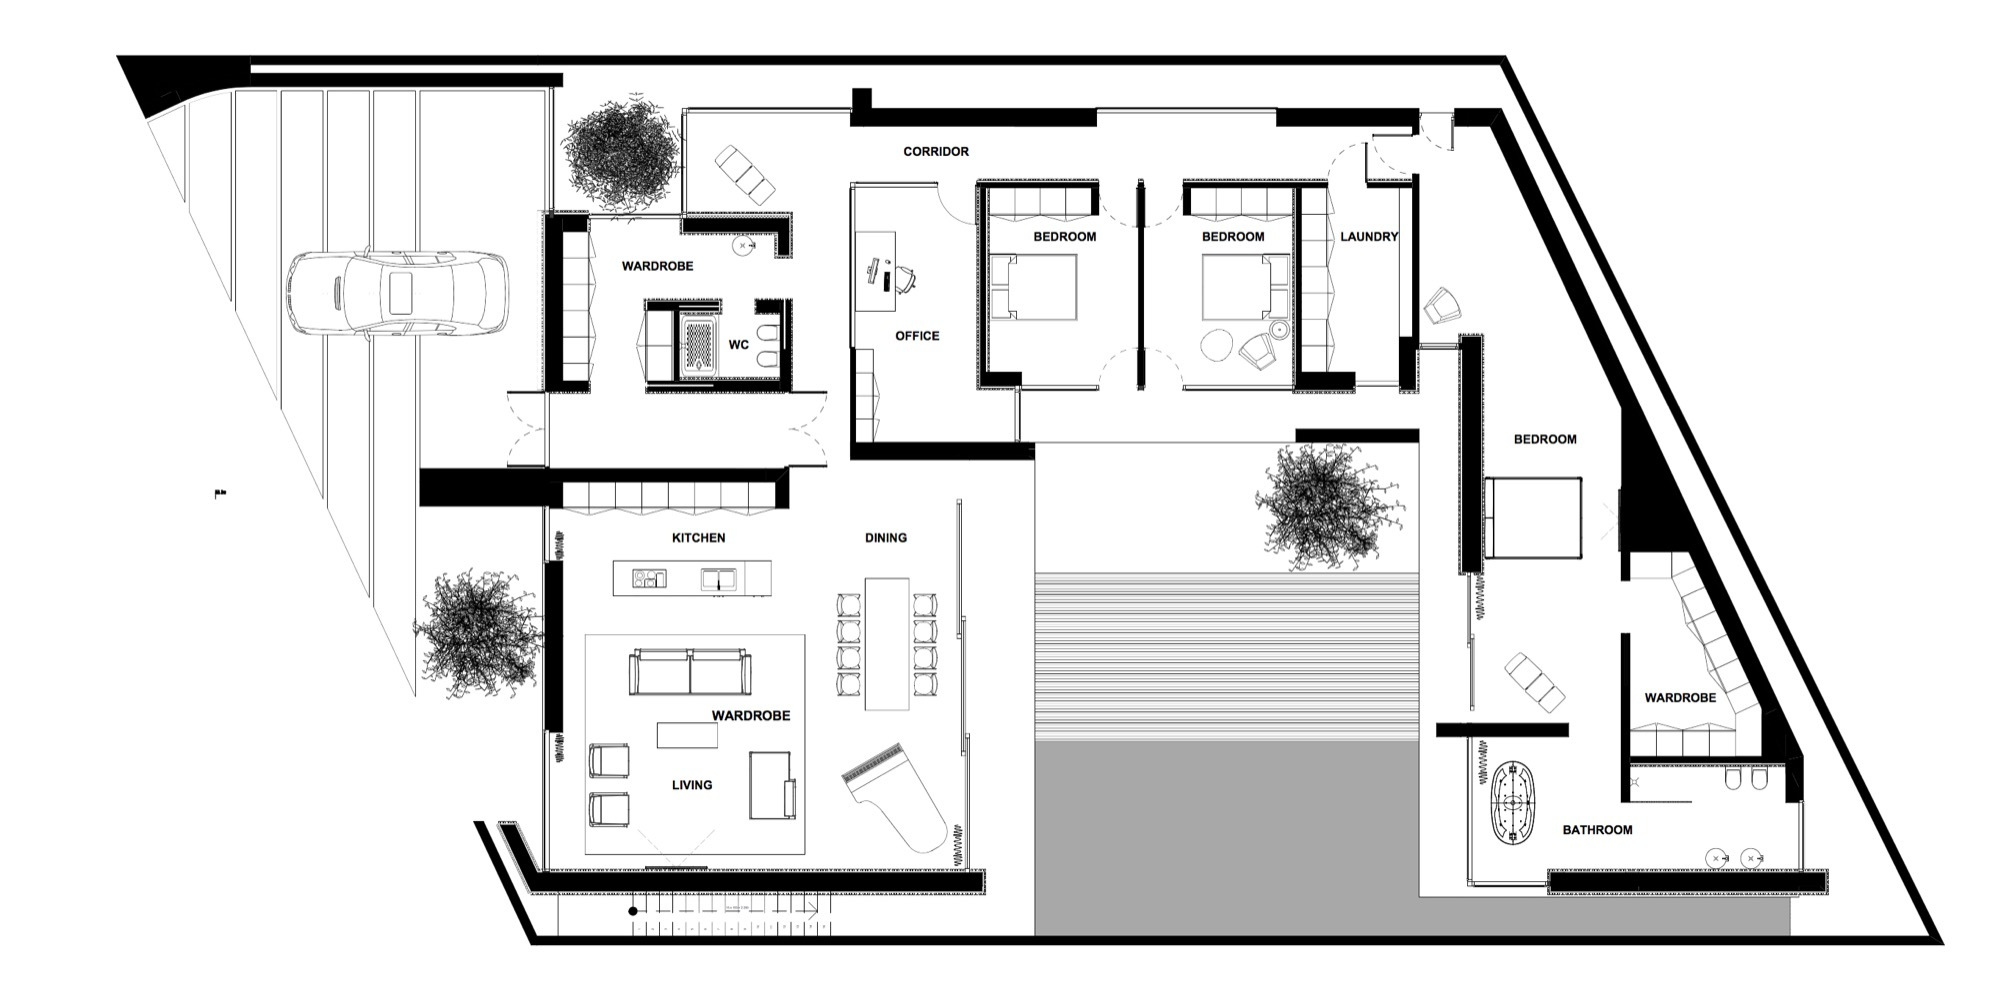 Studio Apartment Floor Plan Design Gallery Of Piano House Line Architects 50